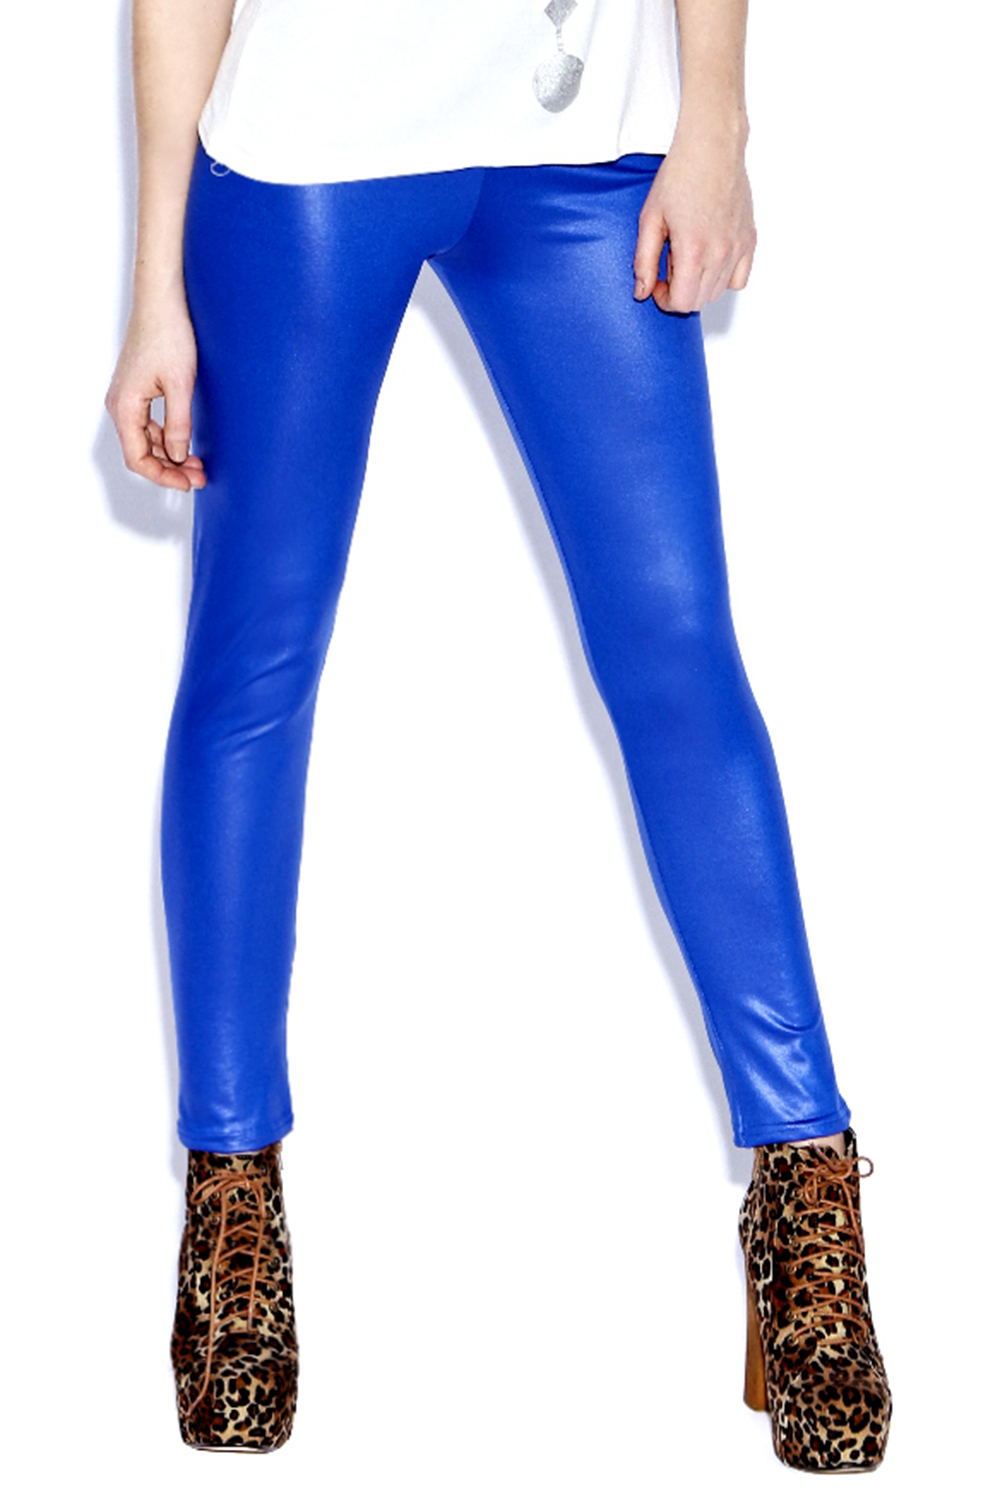 Boohoo-Alice-Wet-Look-Effect-High-Shine-Colour-Block-Leggings-in-Blue